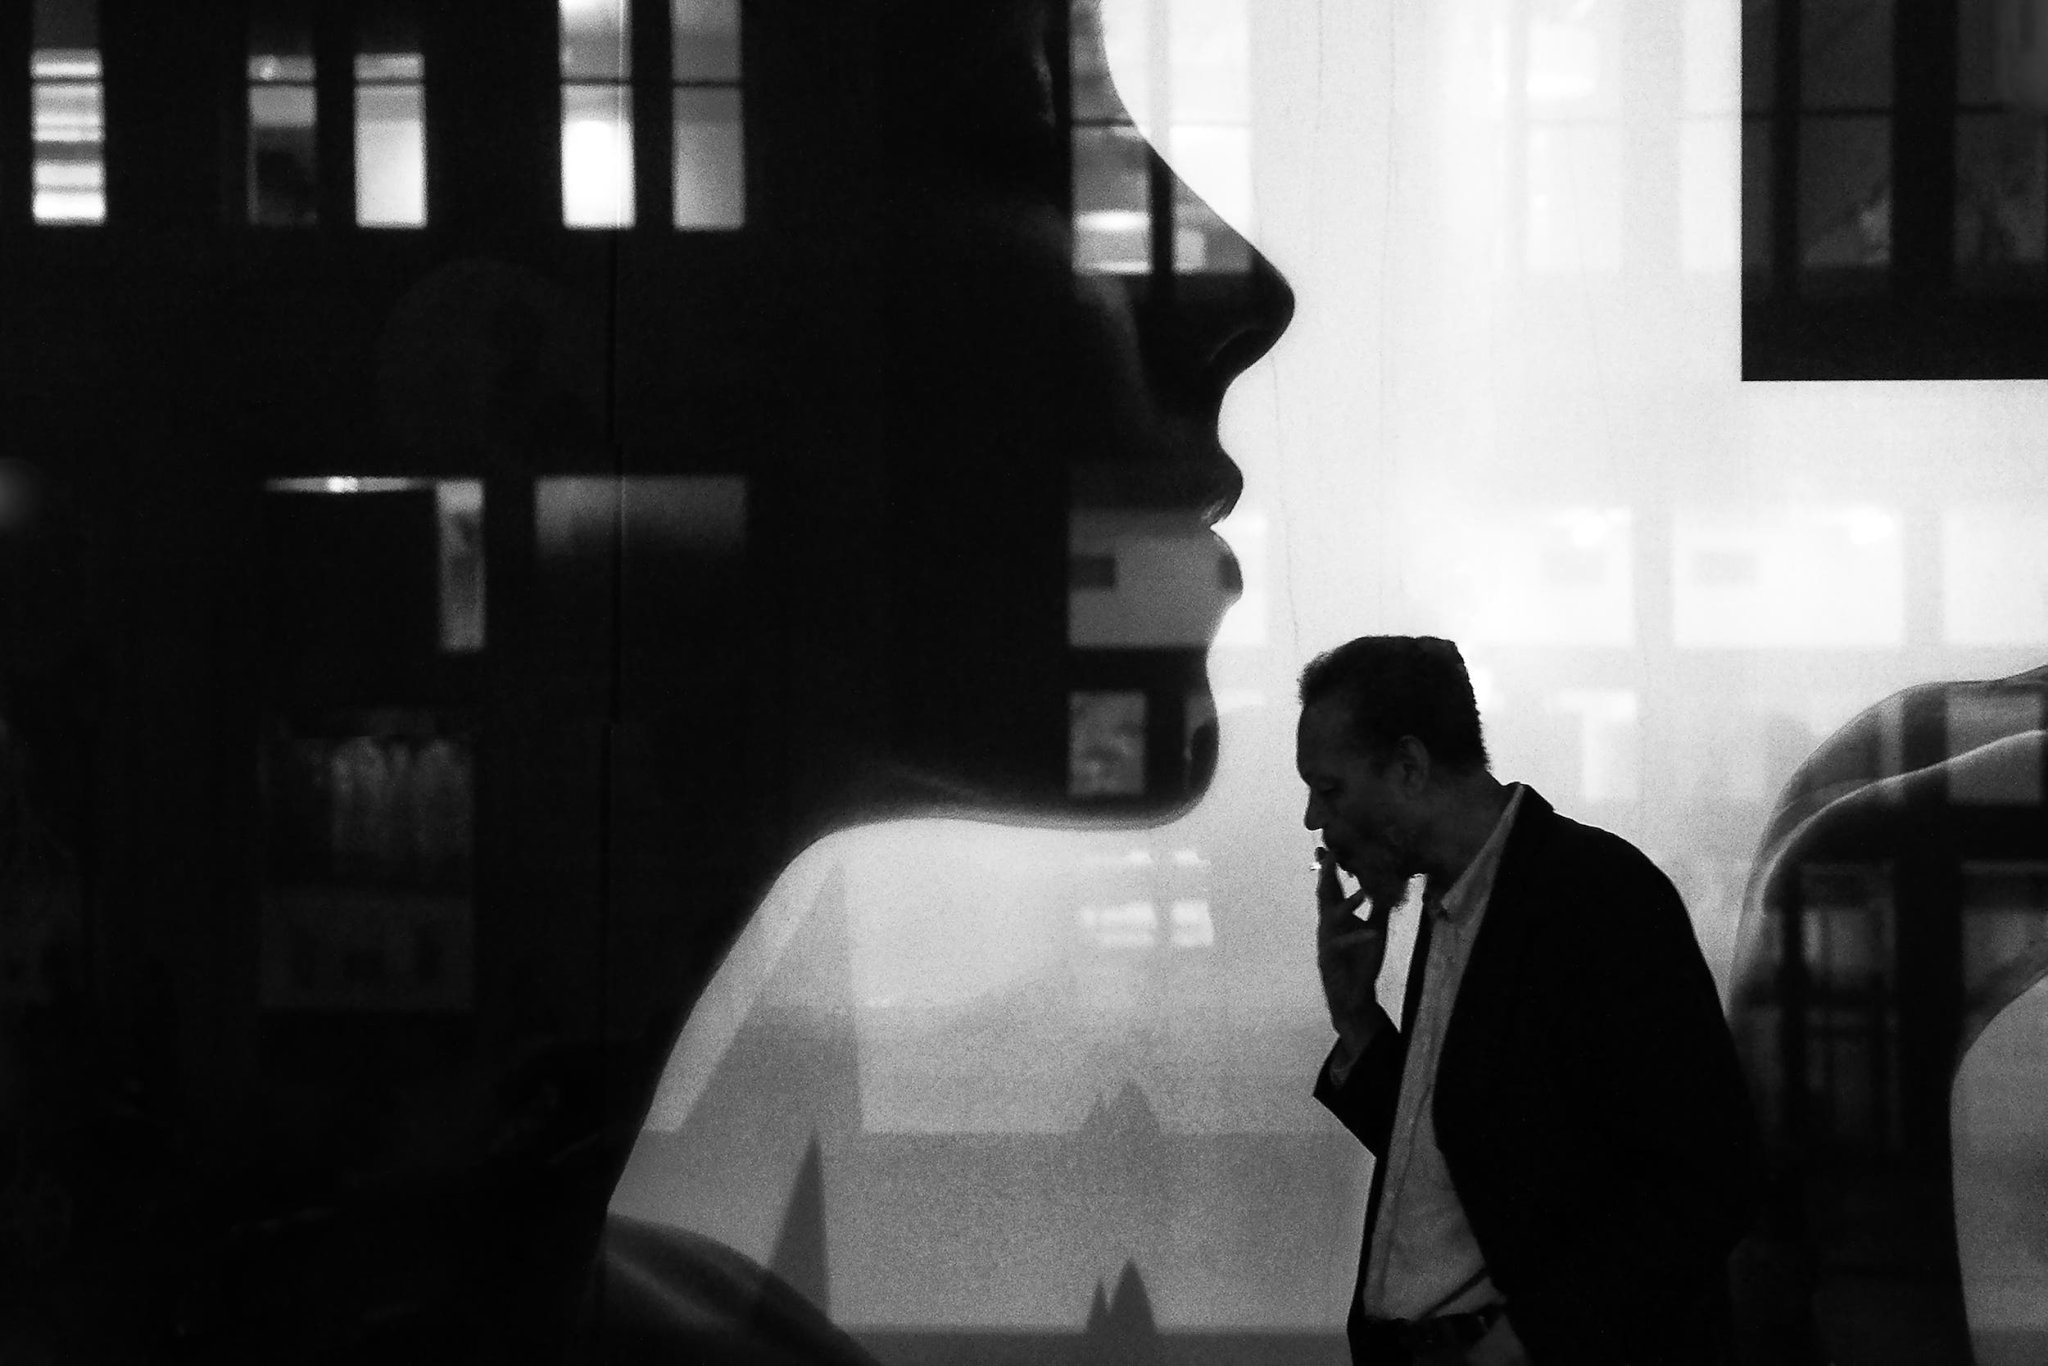 Melissa Breyer's Street Photography Gives You That Timeless, Classic Feel - The Phoblographer